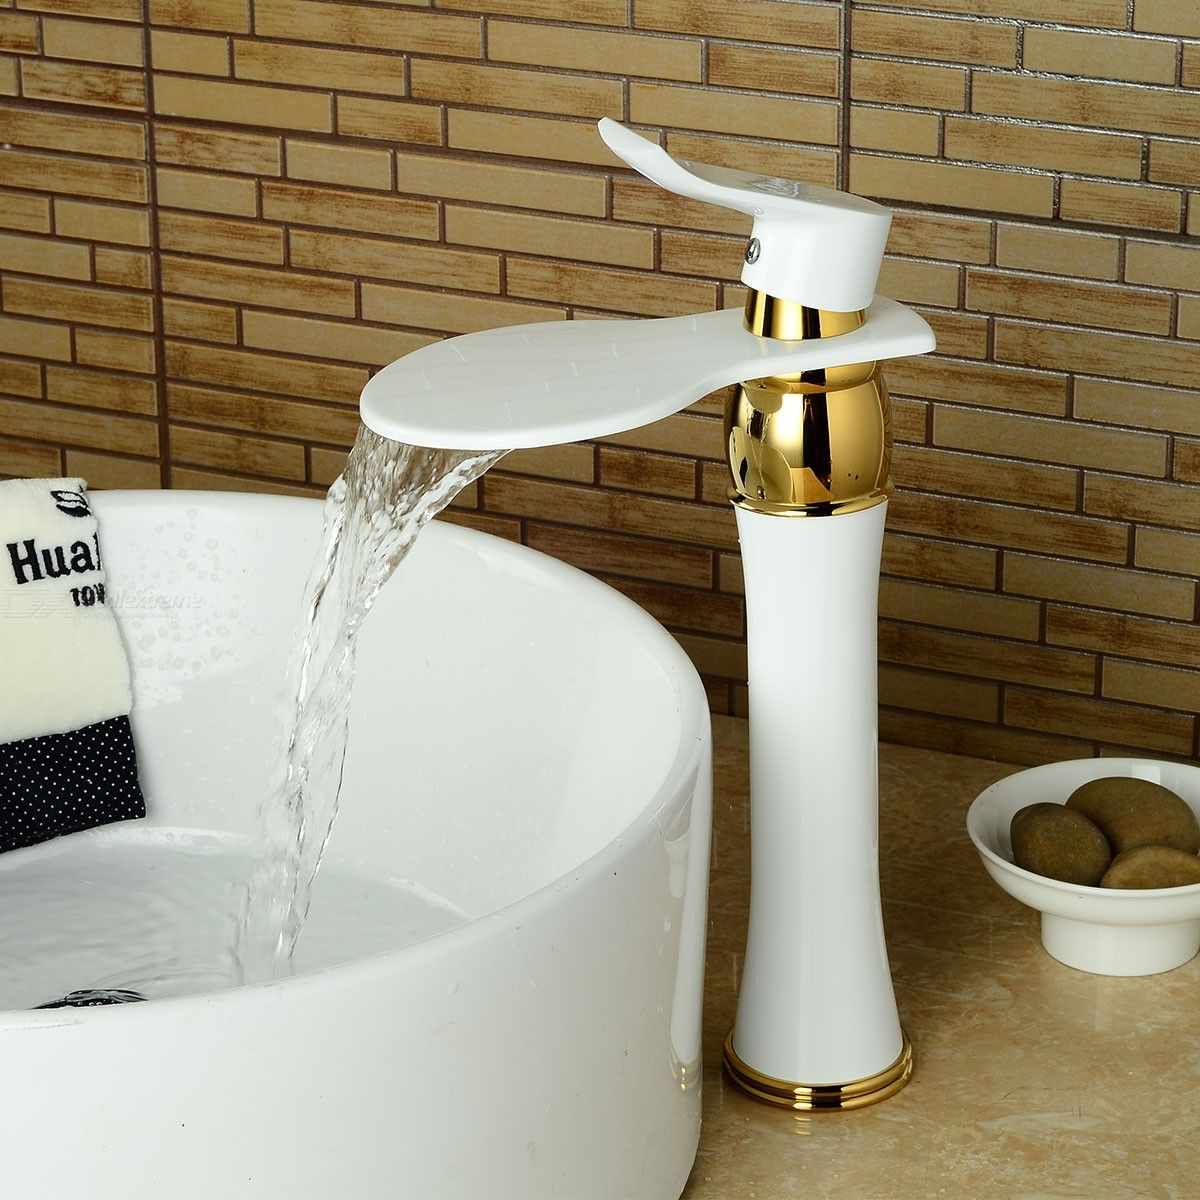 F-0721W1 Bathroom Sink Faucet - White Spray Paint Waterfall Ti-PVD Centerset Single Handle One Hole Bath Taps / Brass